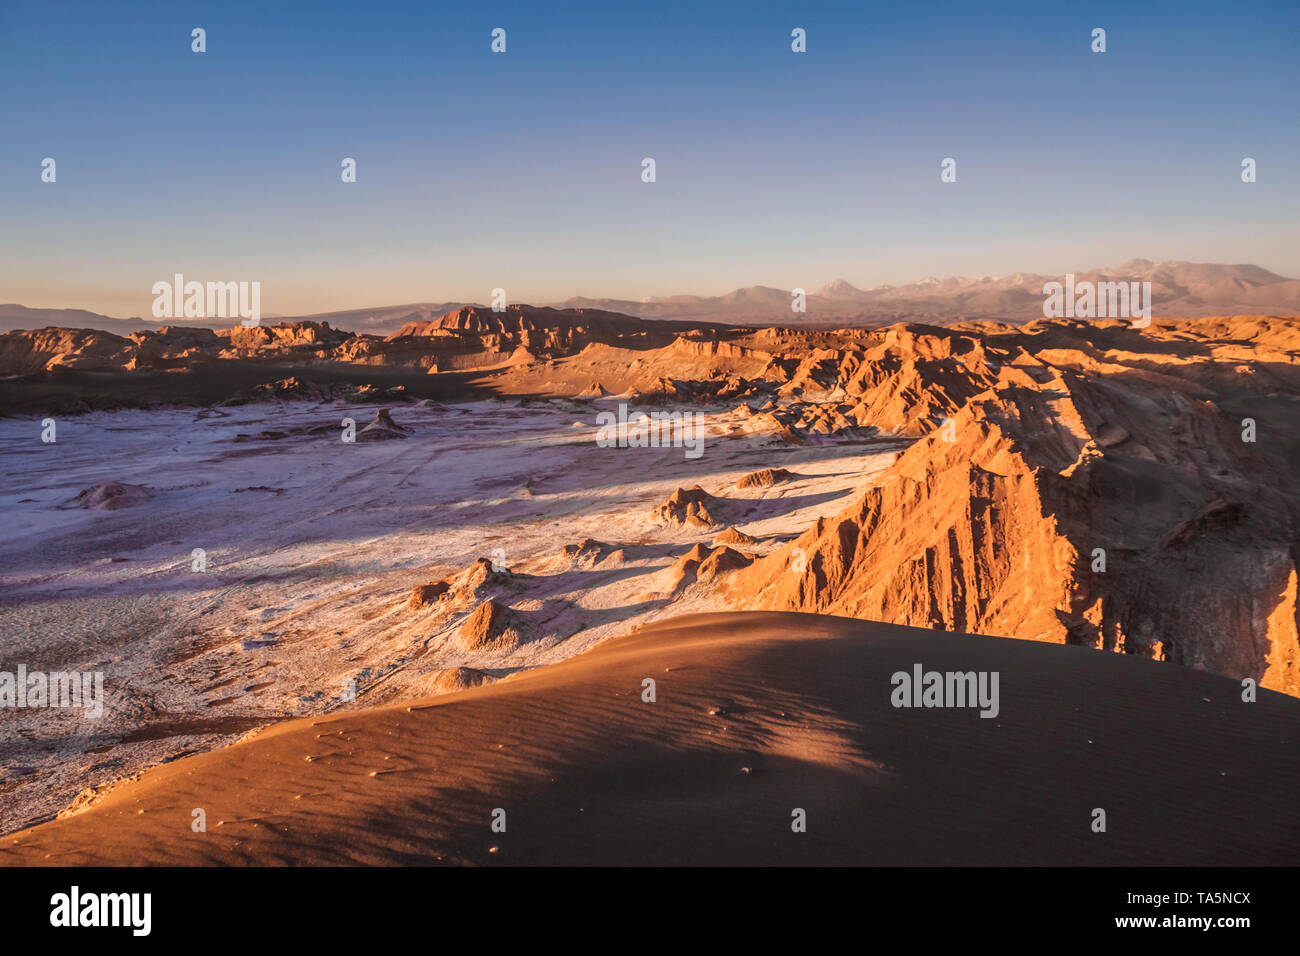 Aerial view of the Valley of the Moon in San Pedro de Atacama during sunset in northern Chile. - Stock Image